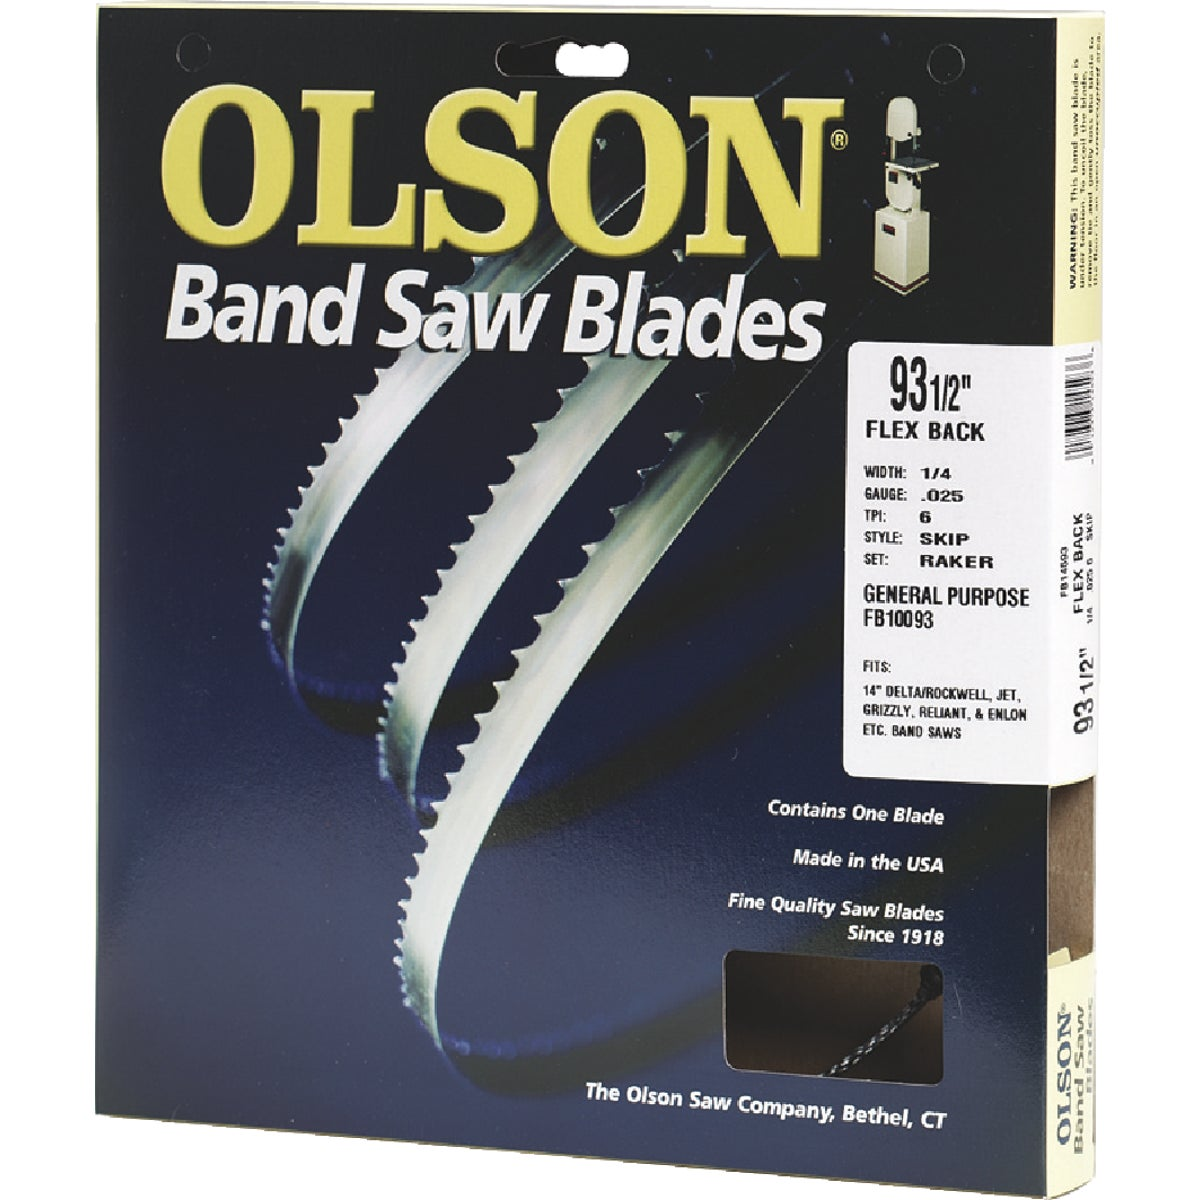 "93-1/2"" BANDSAW BLADE - 10093 by Olson Saw Co"